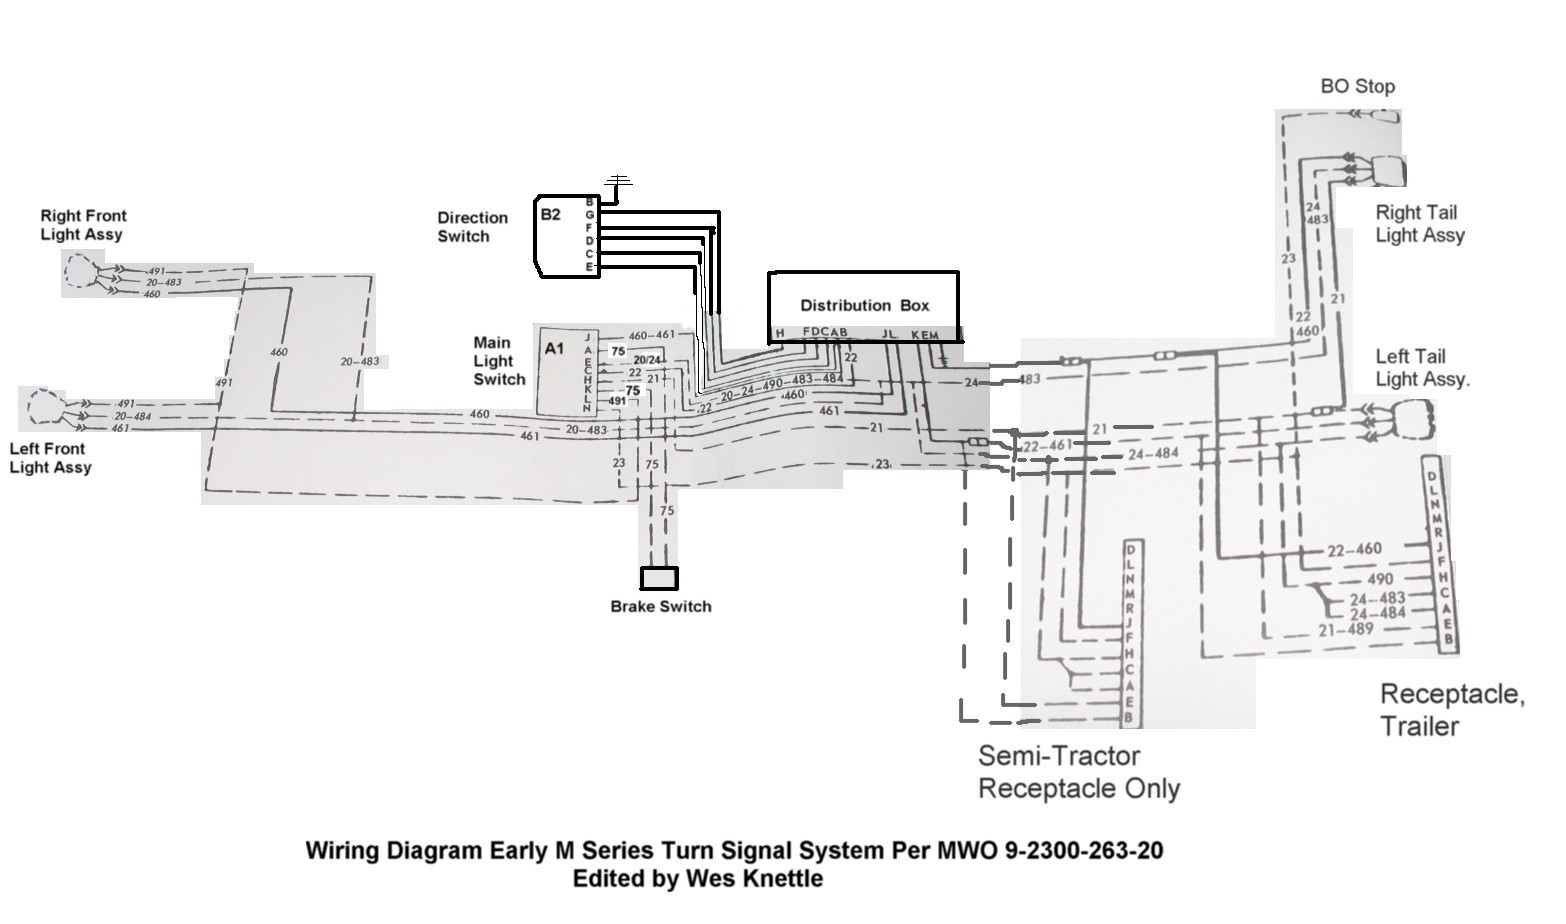 Signal Stat 900 Sigflare Wiring Diagram Schematics Golf Cart Turn Switch Trusted Diagrams